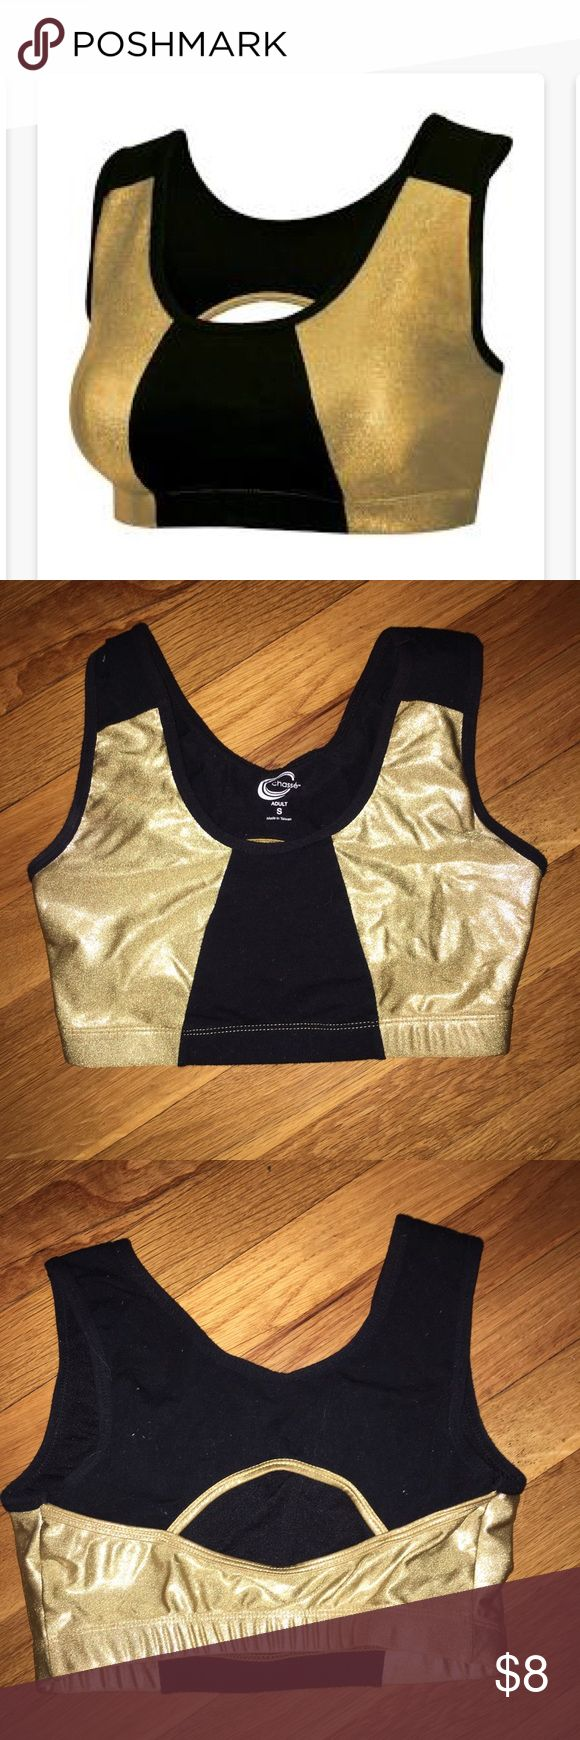 Black and gold sports bra🖤💛 Super soft and comfy sports bra that I've only worn once so it's essentially new! It's a size small.   Everyone make bids/offers! I'm trying to clear out my closet and everything has to go! If you don't like the price, make an offer 🤗 If you have any questions, please feel free to leave a comment down below!! 👇💓 Intimates & Sleepwear Bras